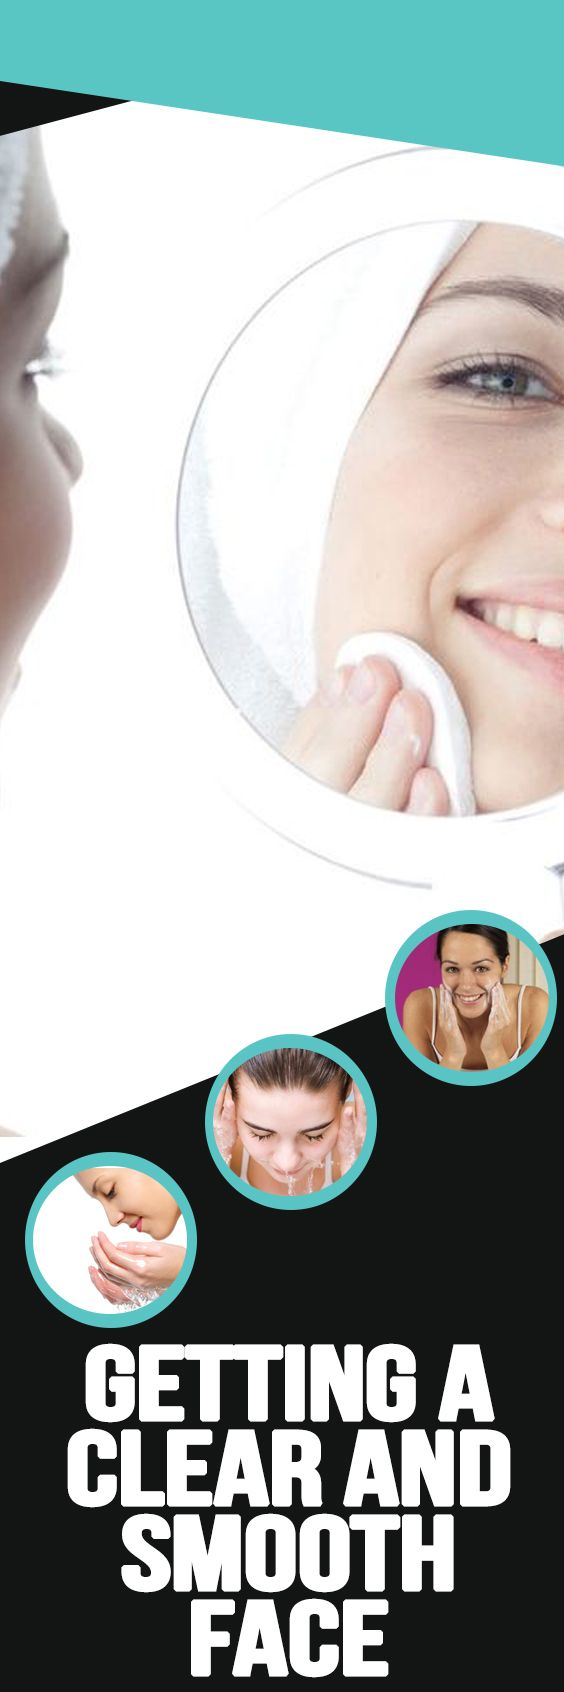 Getting a Clear and Smooth Face